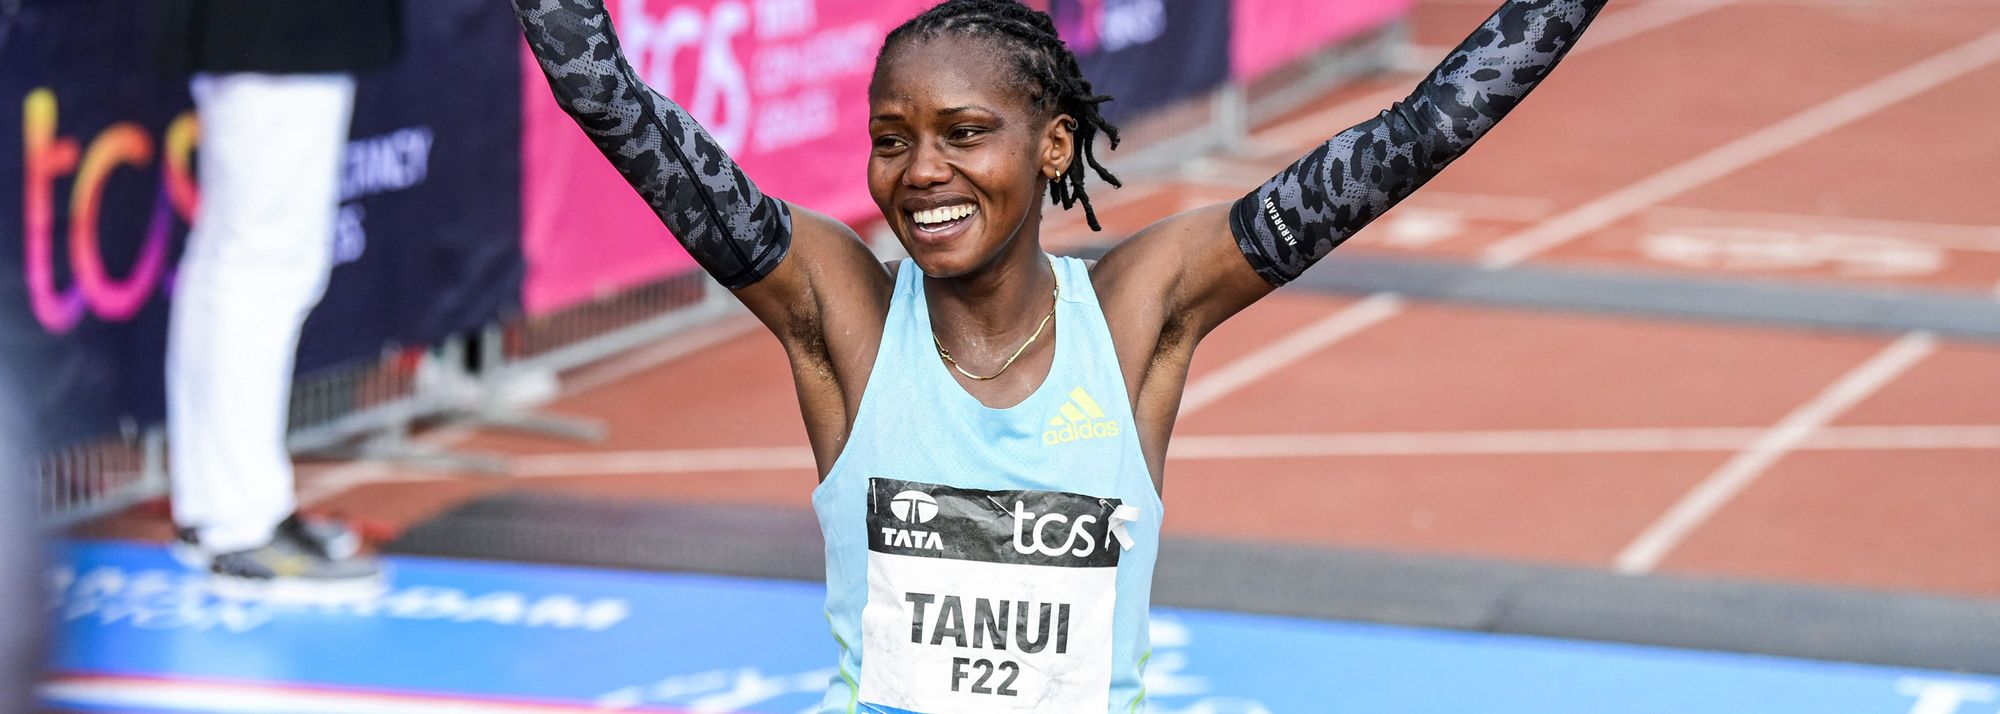 Angela Tanui (2:17:57) and Tamirat Tola (2:03:39) produce the fastest ever times on Dutch soil